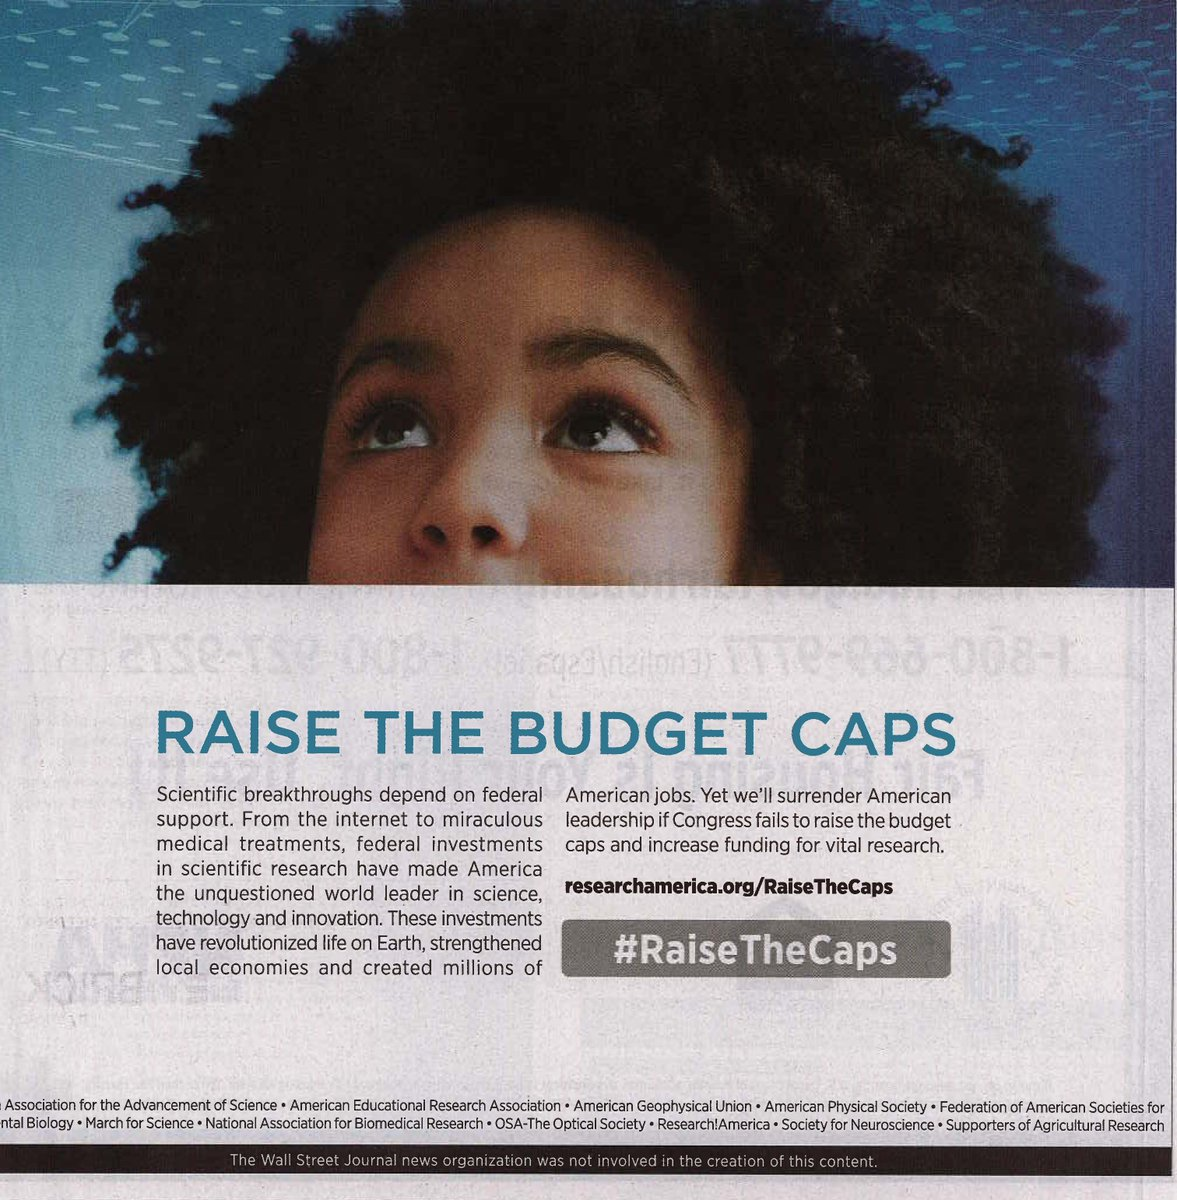 Our full-page #RaisetheCaps ad is in today&#39;s @WSJ. Learn more about the campaign and find out how you can help Congress reach a bipartisan FY18 budget deal that supports life-saving scientific research.  http:// researchamerica.org/raisethecaps  &nbsp;  <br>http://pic.twitter.com/8oDclBPmAI